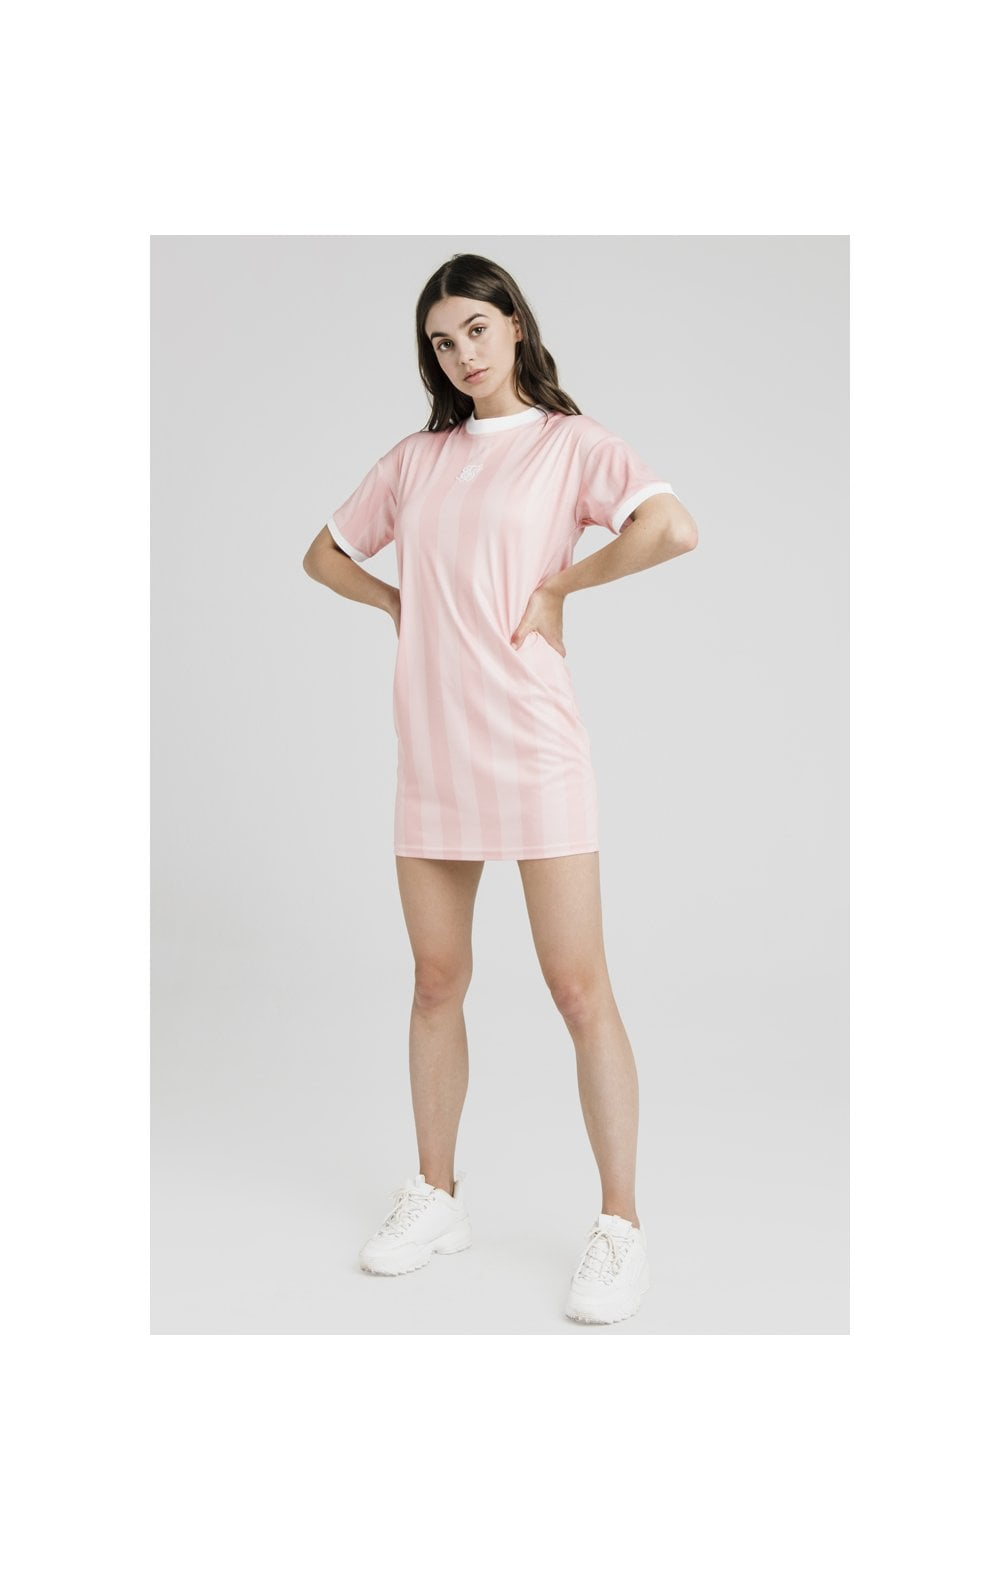 SikSilk Luxury Poly Dress - Apricot Blush (4)